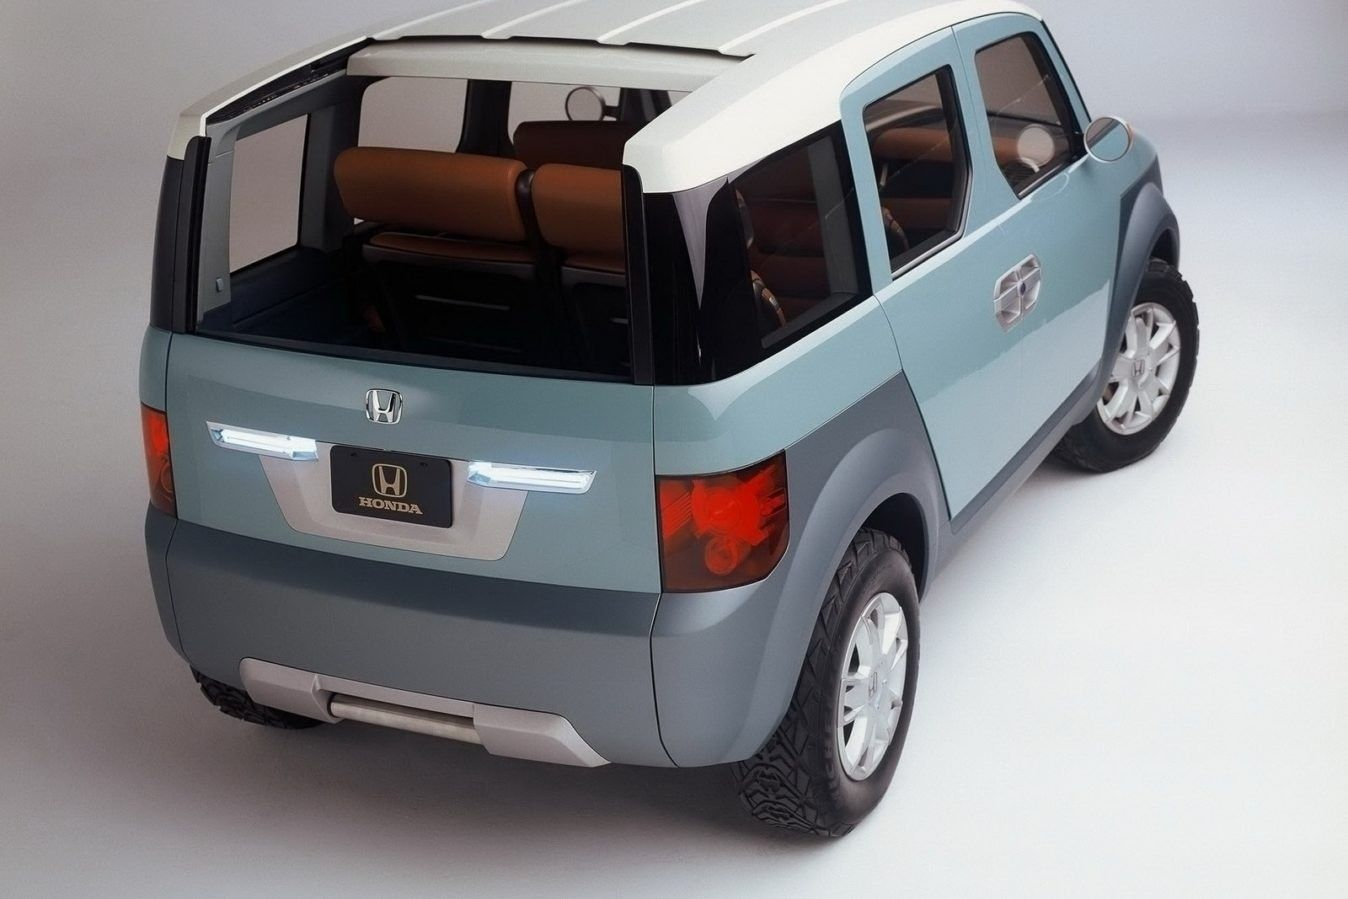 Element Honda 2019 Spy Shoot Honda Element Camping Honda Element Honda Element Camper